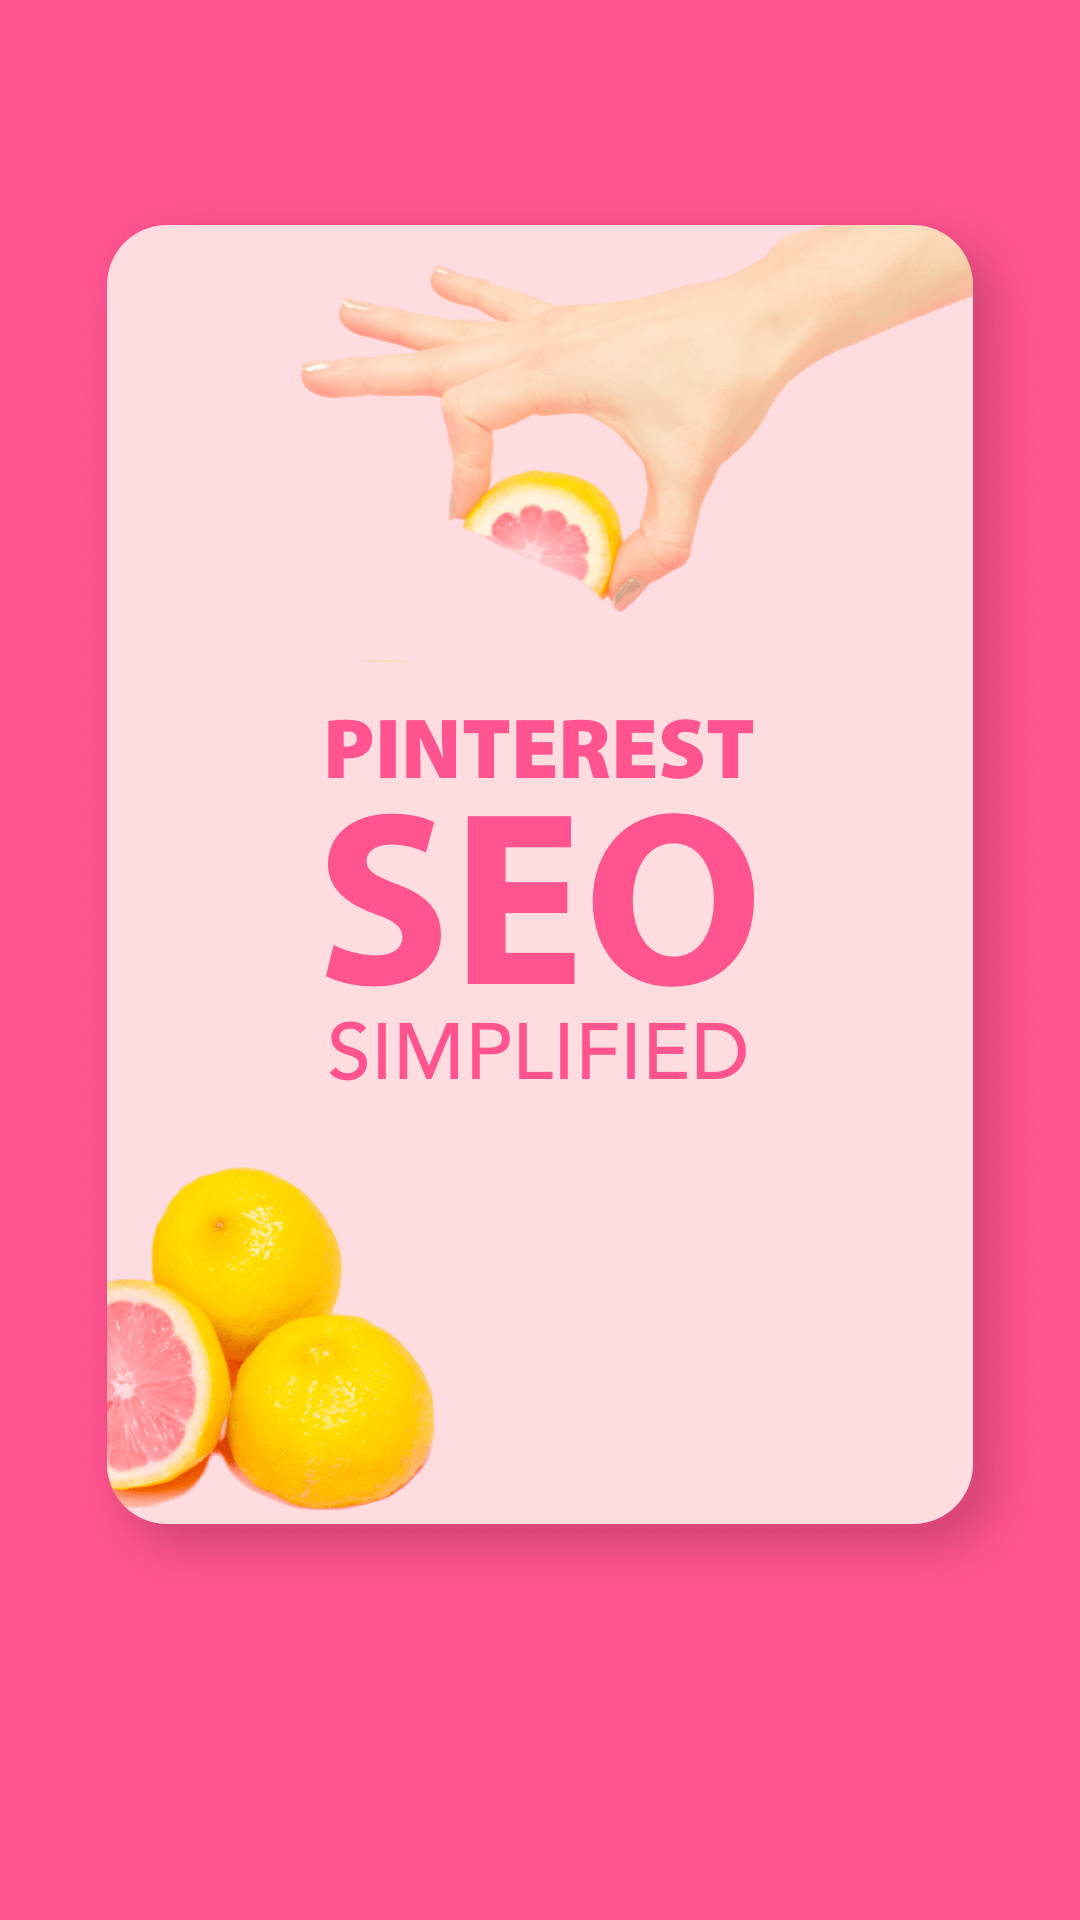 SEO Marketing Tips Pinterest SEO Simplified